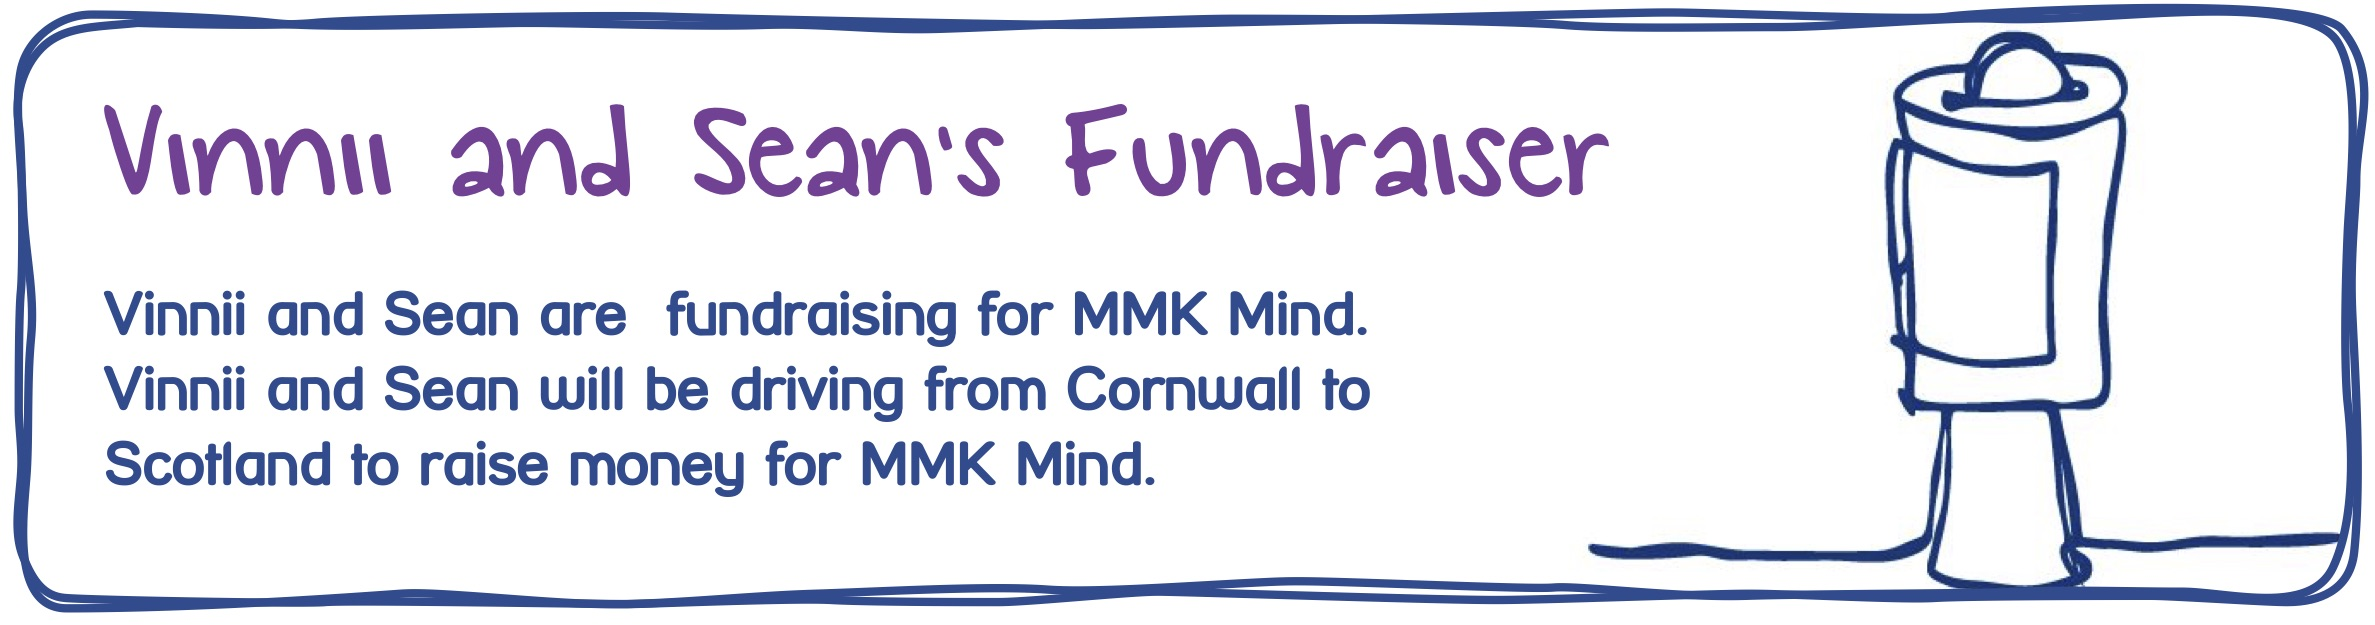 Vinnii and Sean's Maidstone and Mid-Kent Mind Fundraiser is a drive from Cornwall to Scotland, raising money for MMK Mind.